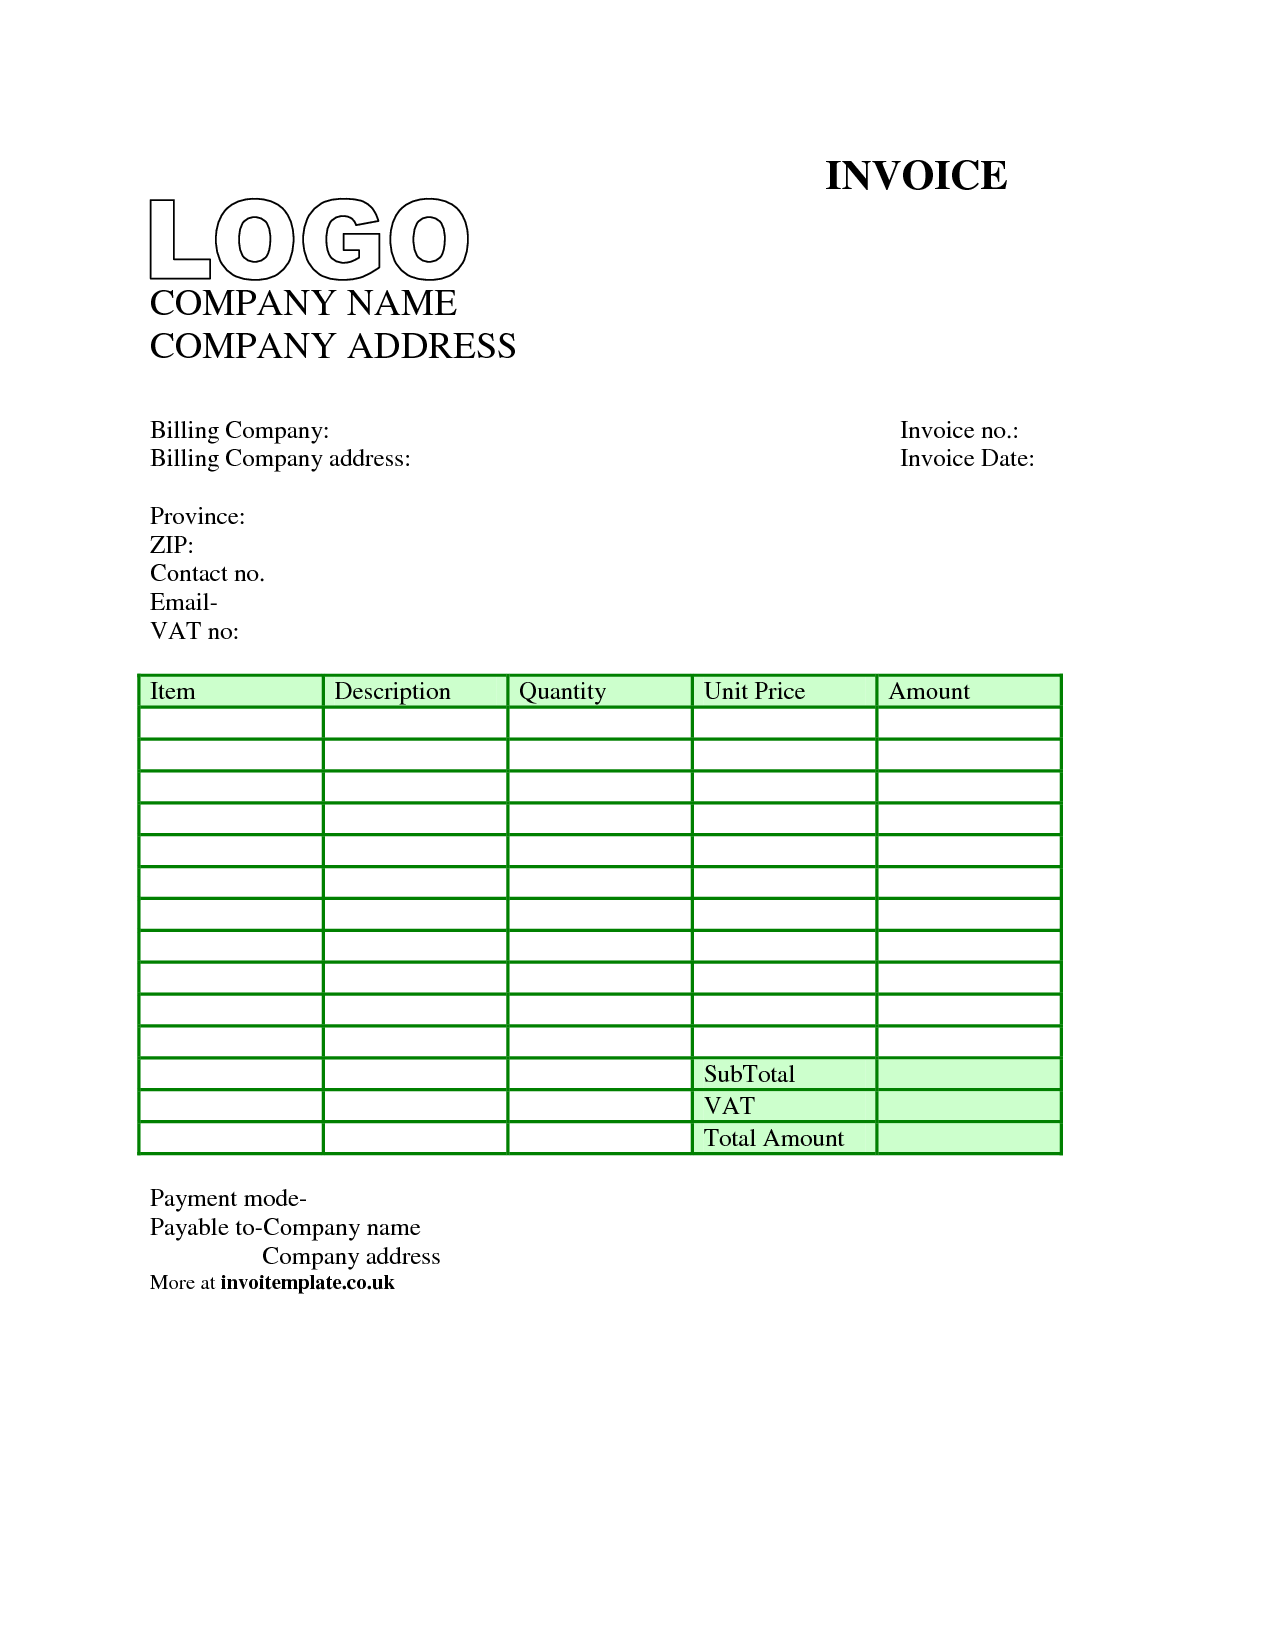 invoice template uk word invoice example invoice template uk word invoice template uk vnzgames vat 1iv excel google docs print blank commercial xls doc word lance pdf online